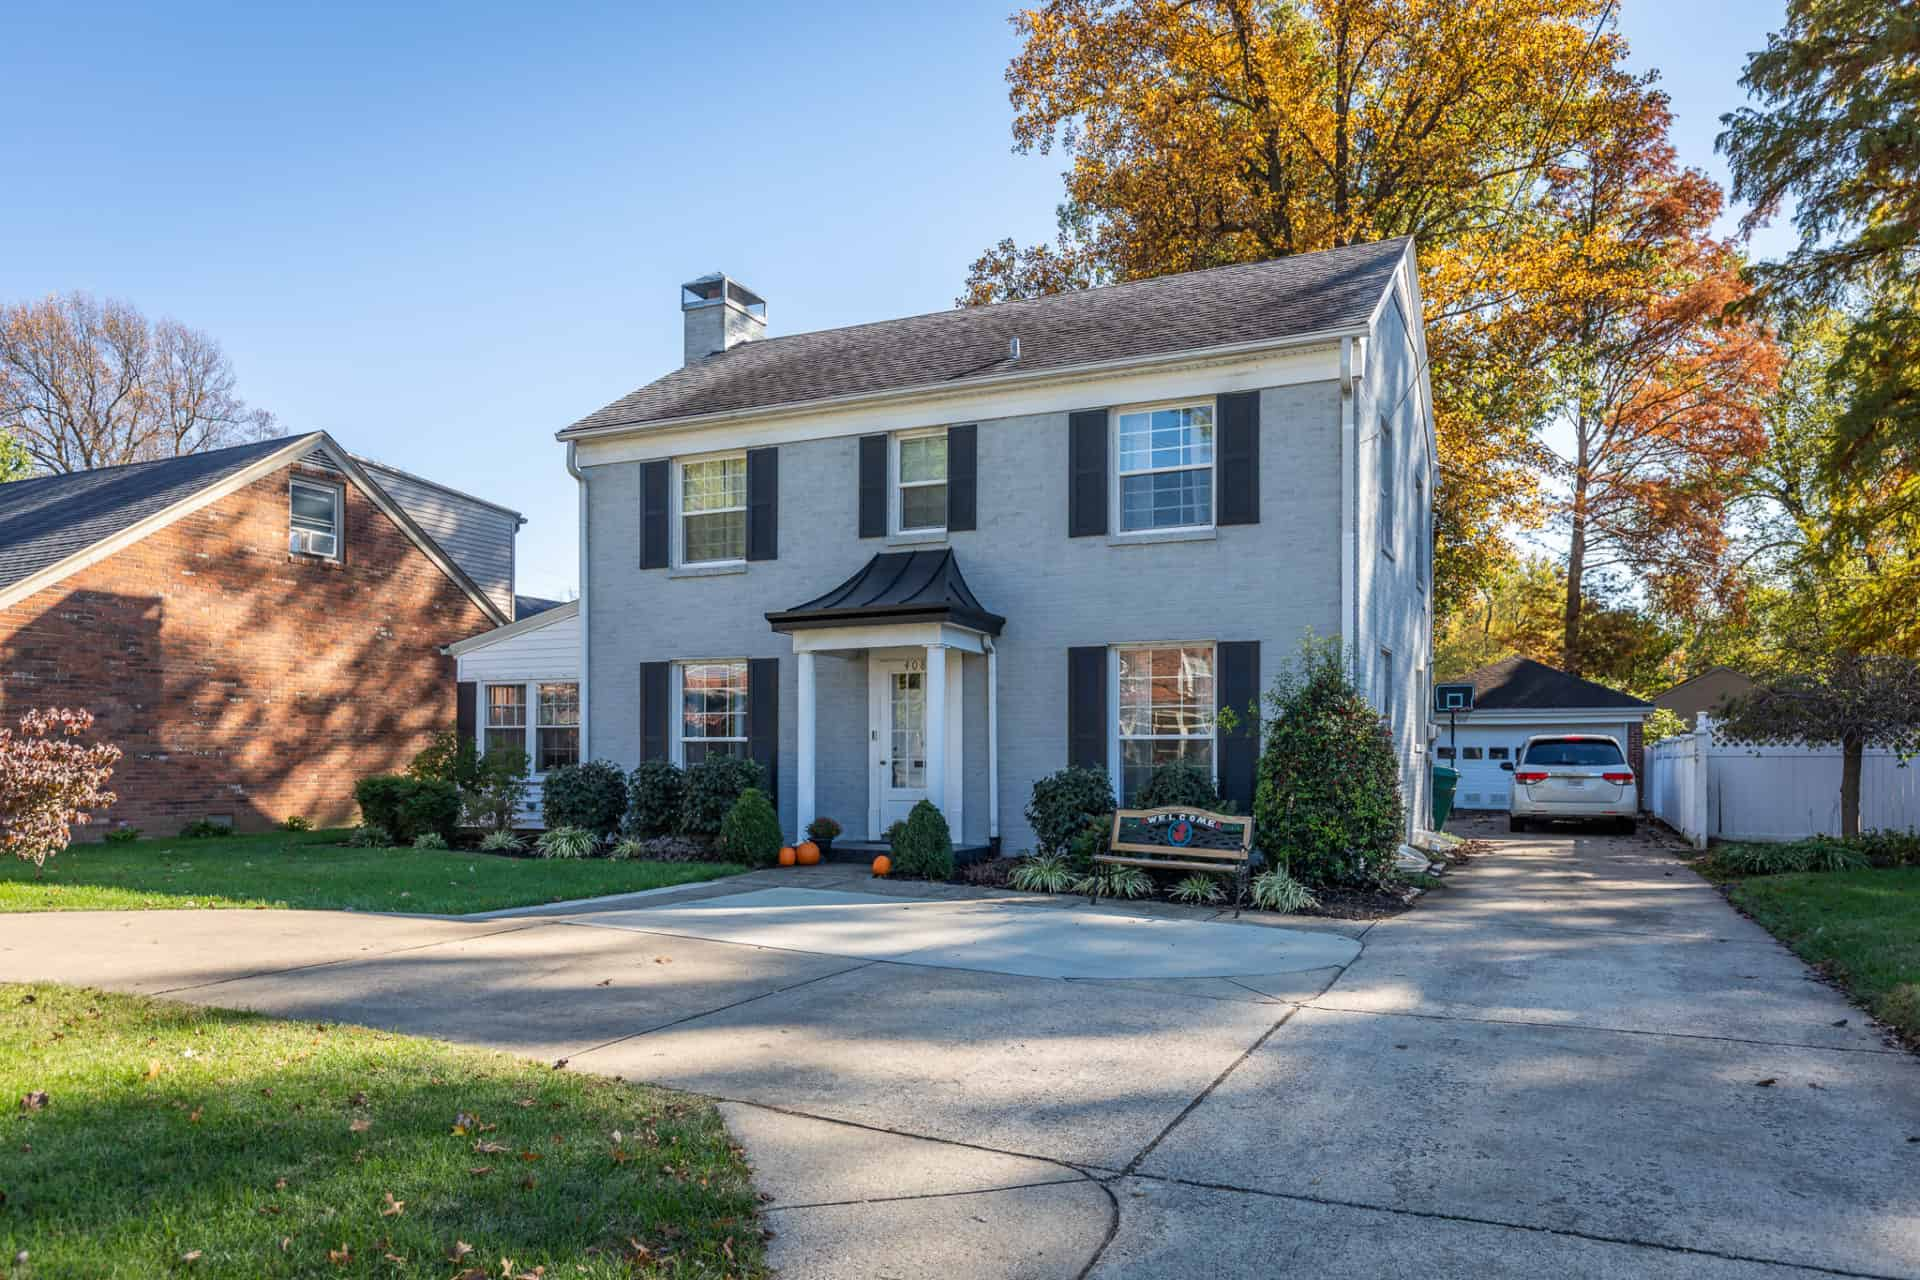 408 Ford Ave., Owensboro, KY 42301